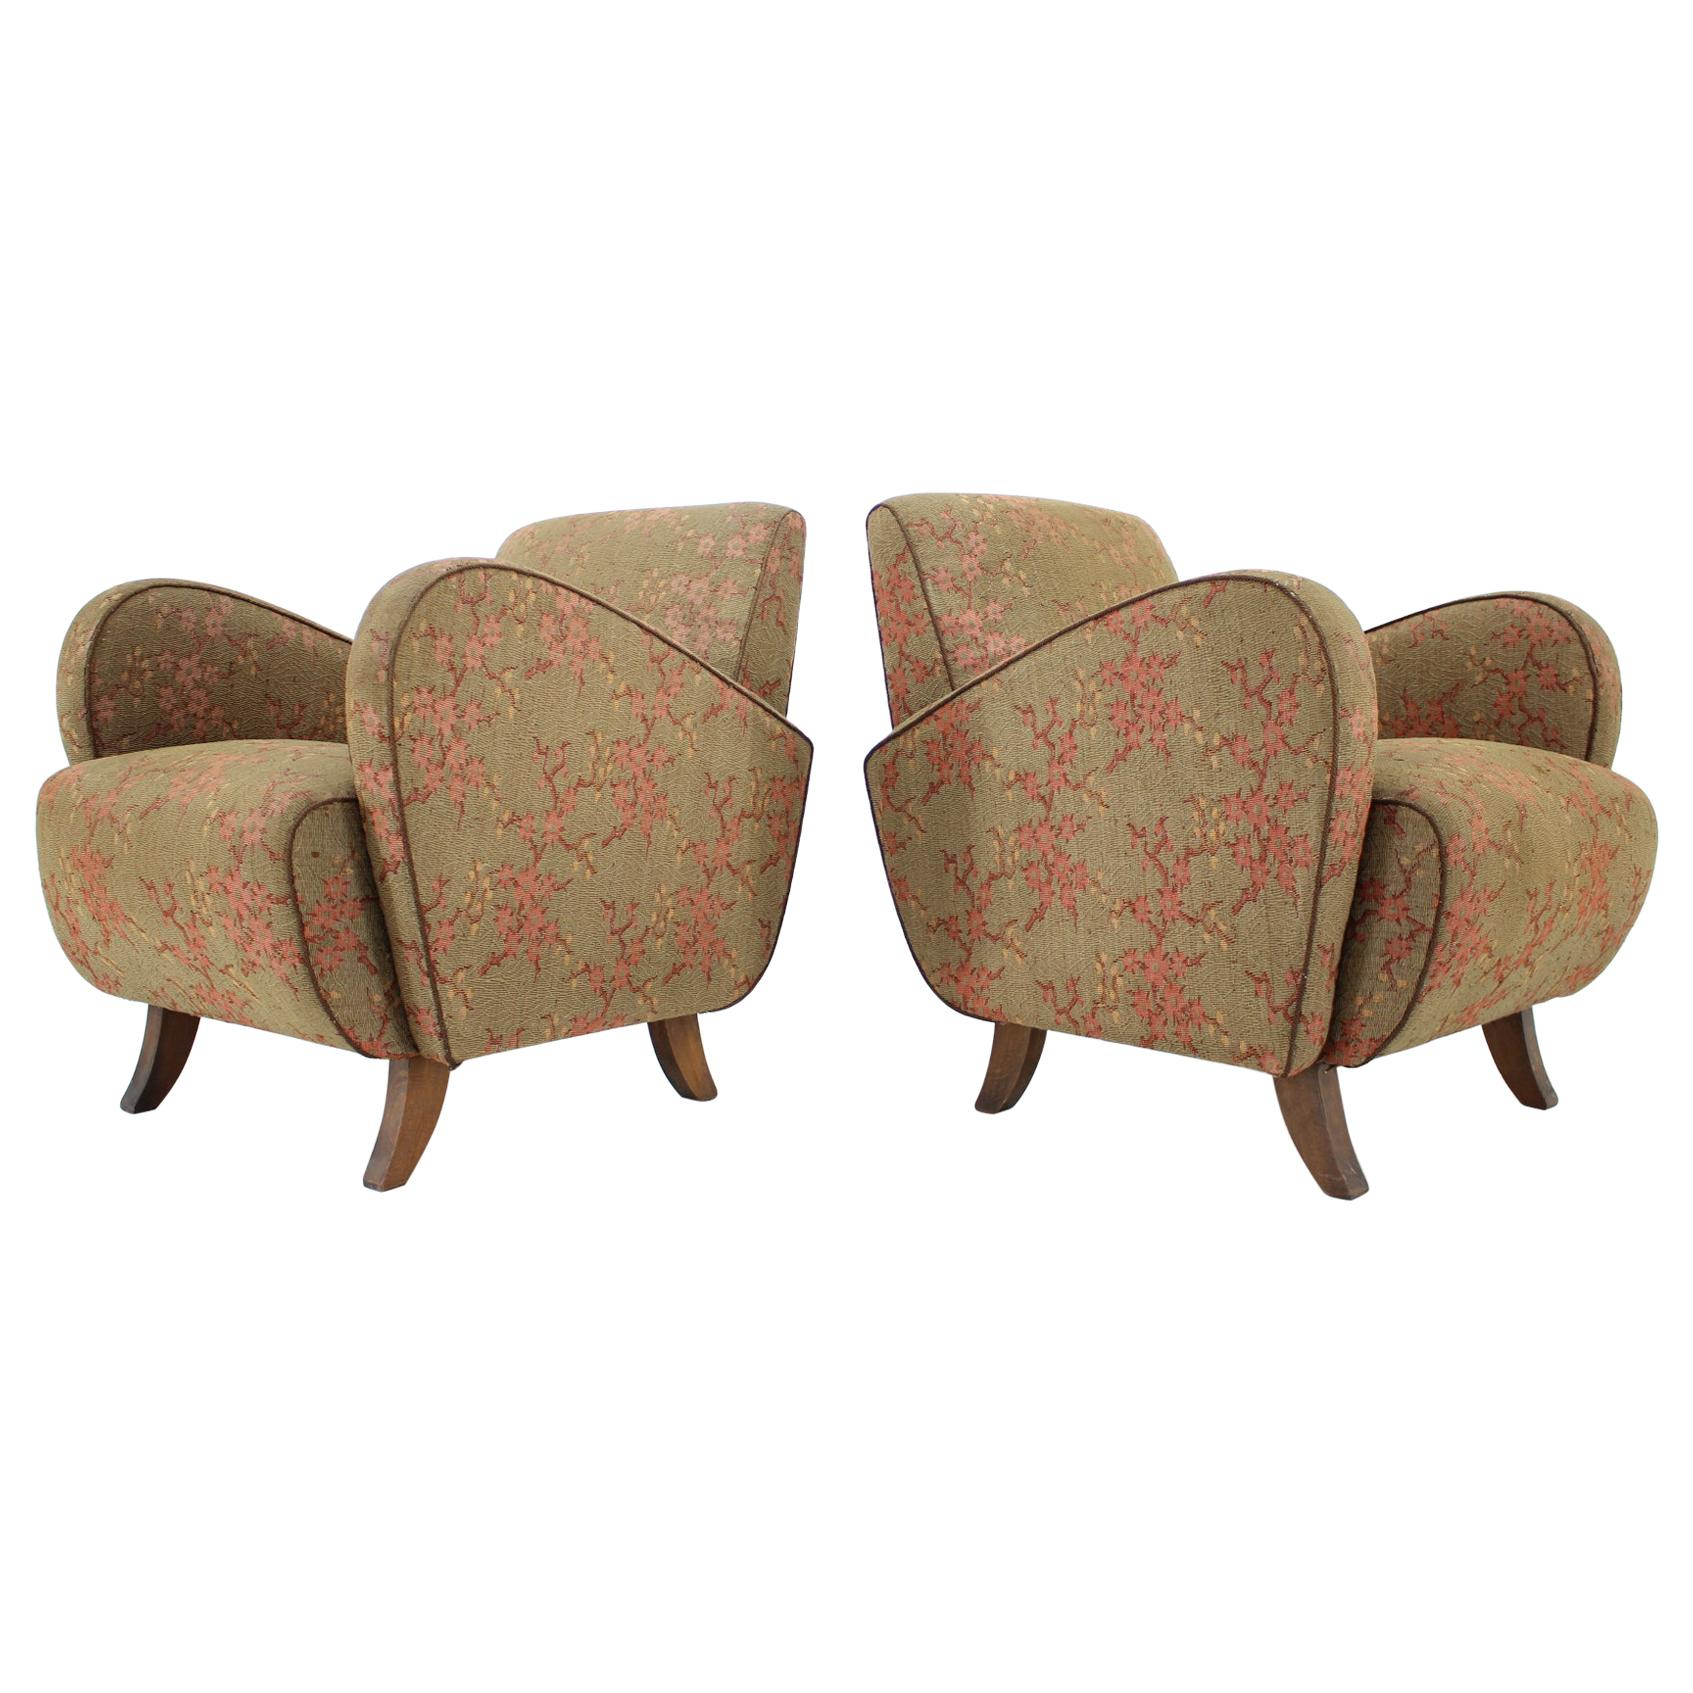 Set of Two Very Rare Art Deco Armchairs H-283 by Jindřich Halabala, 1930s